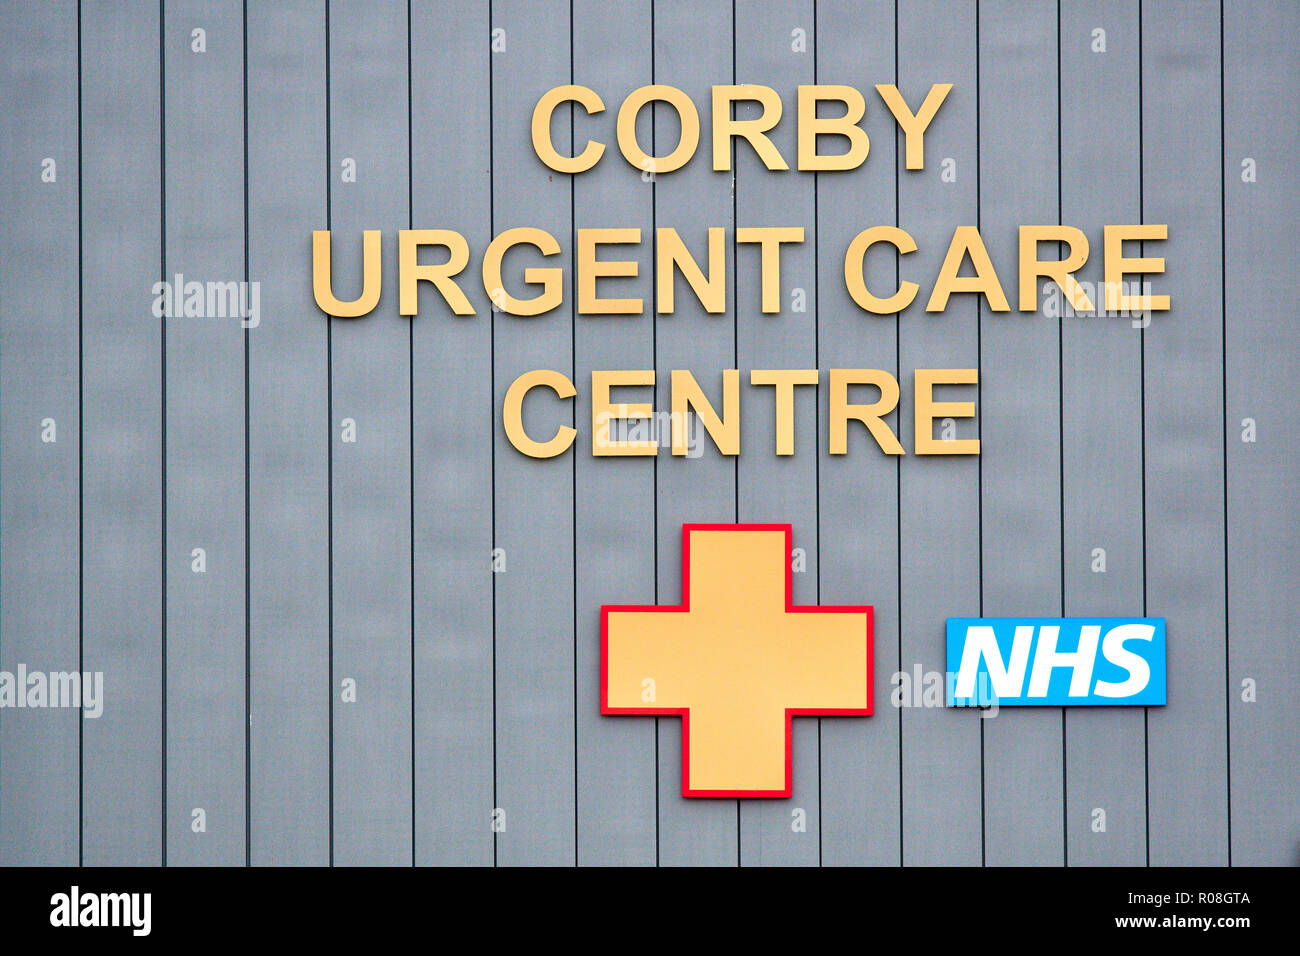 Corby urgent care centre, England. - Stock Image